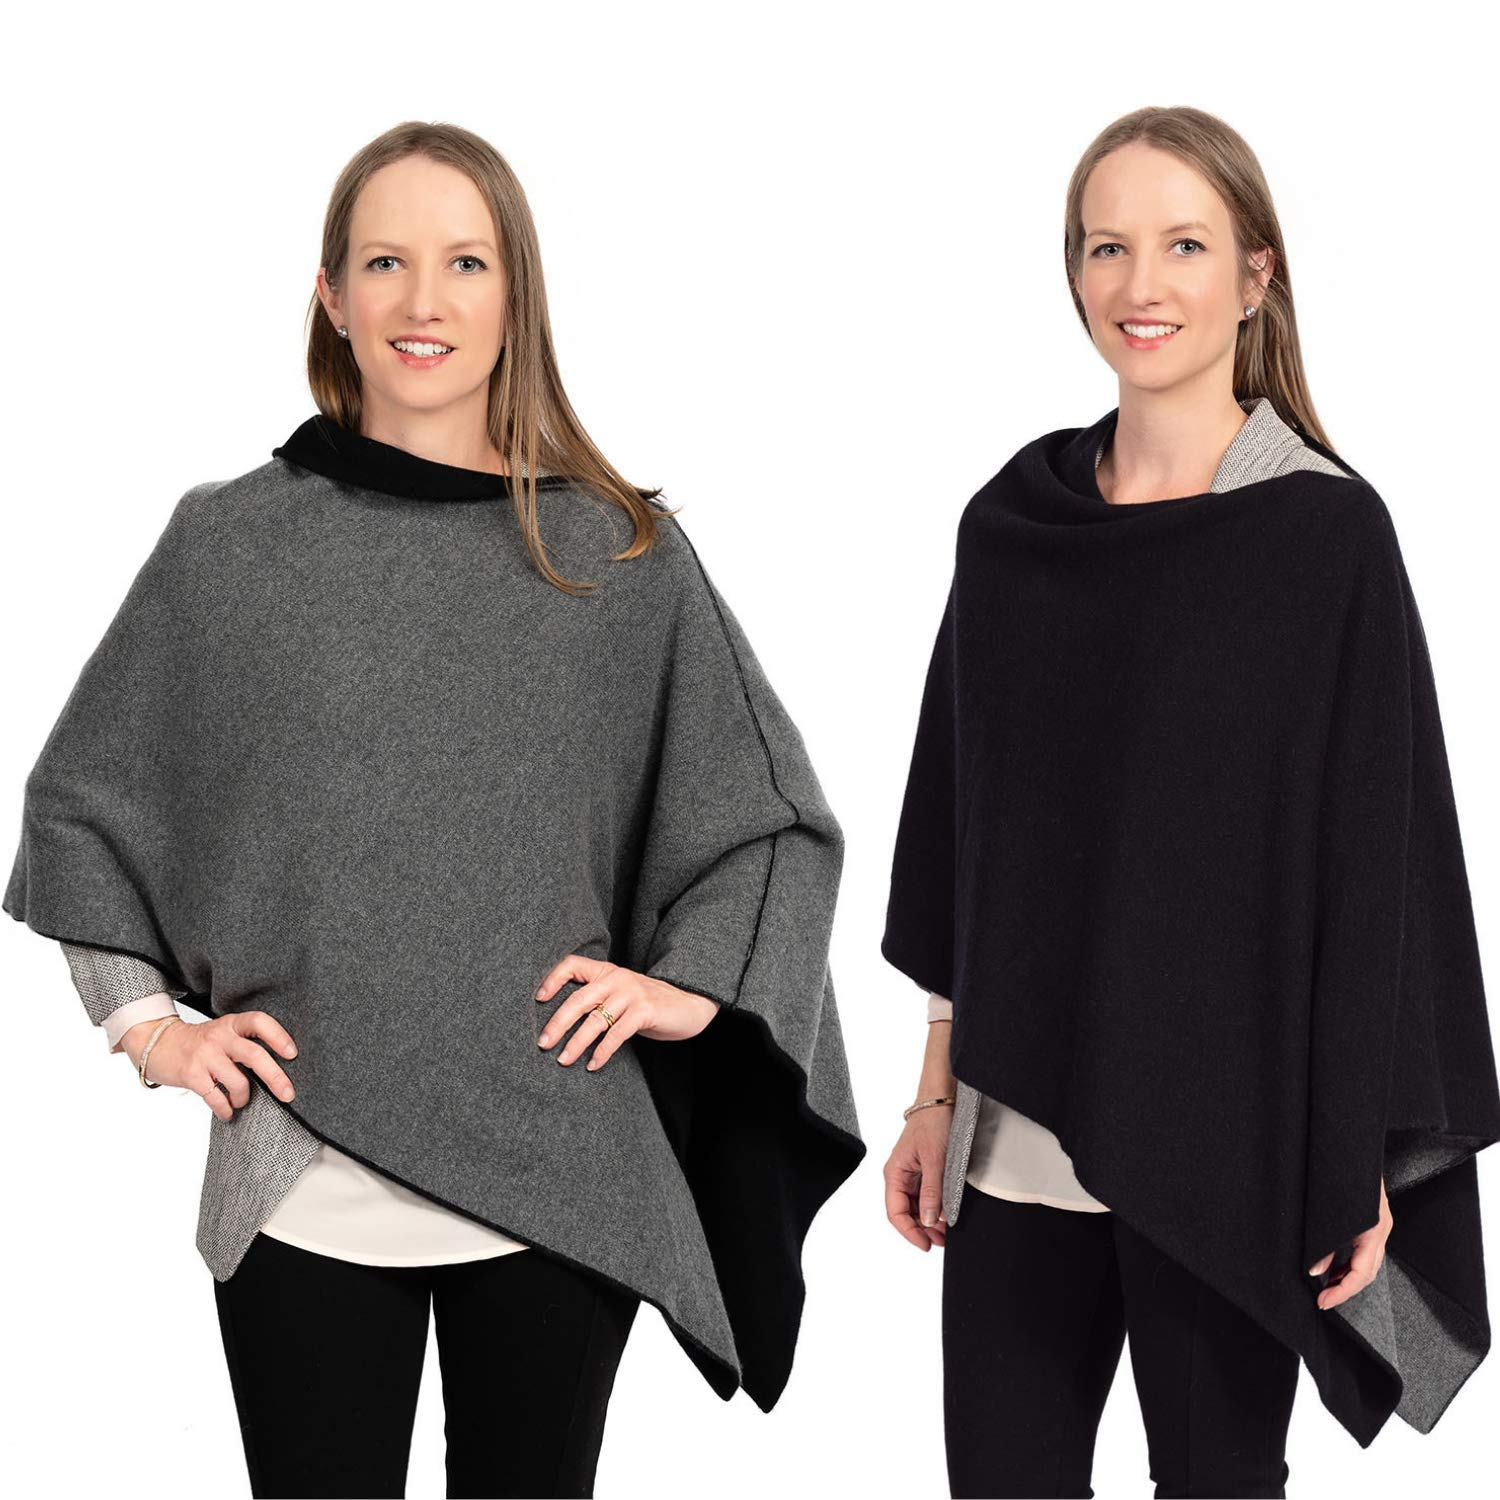 Cashmere Reversible Poncho Dress Topper - 100% Pure Luxury Knit - Ultra Soft and Warm with Beautiful Silk Keepsake Gift Bag (Black and Charcoal Gray)